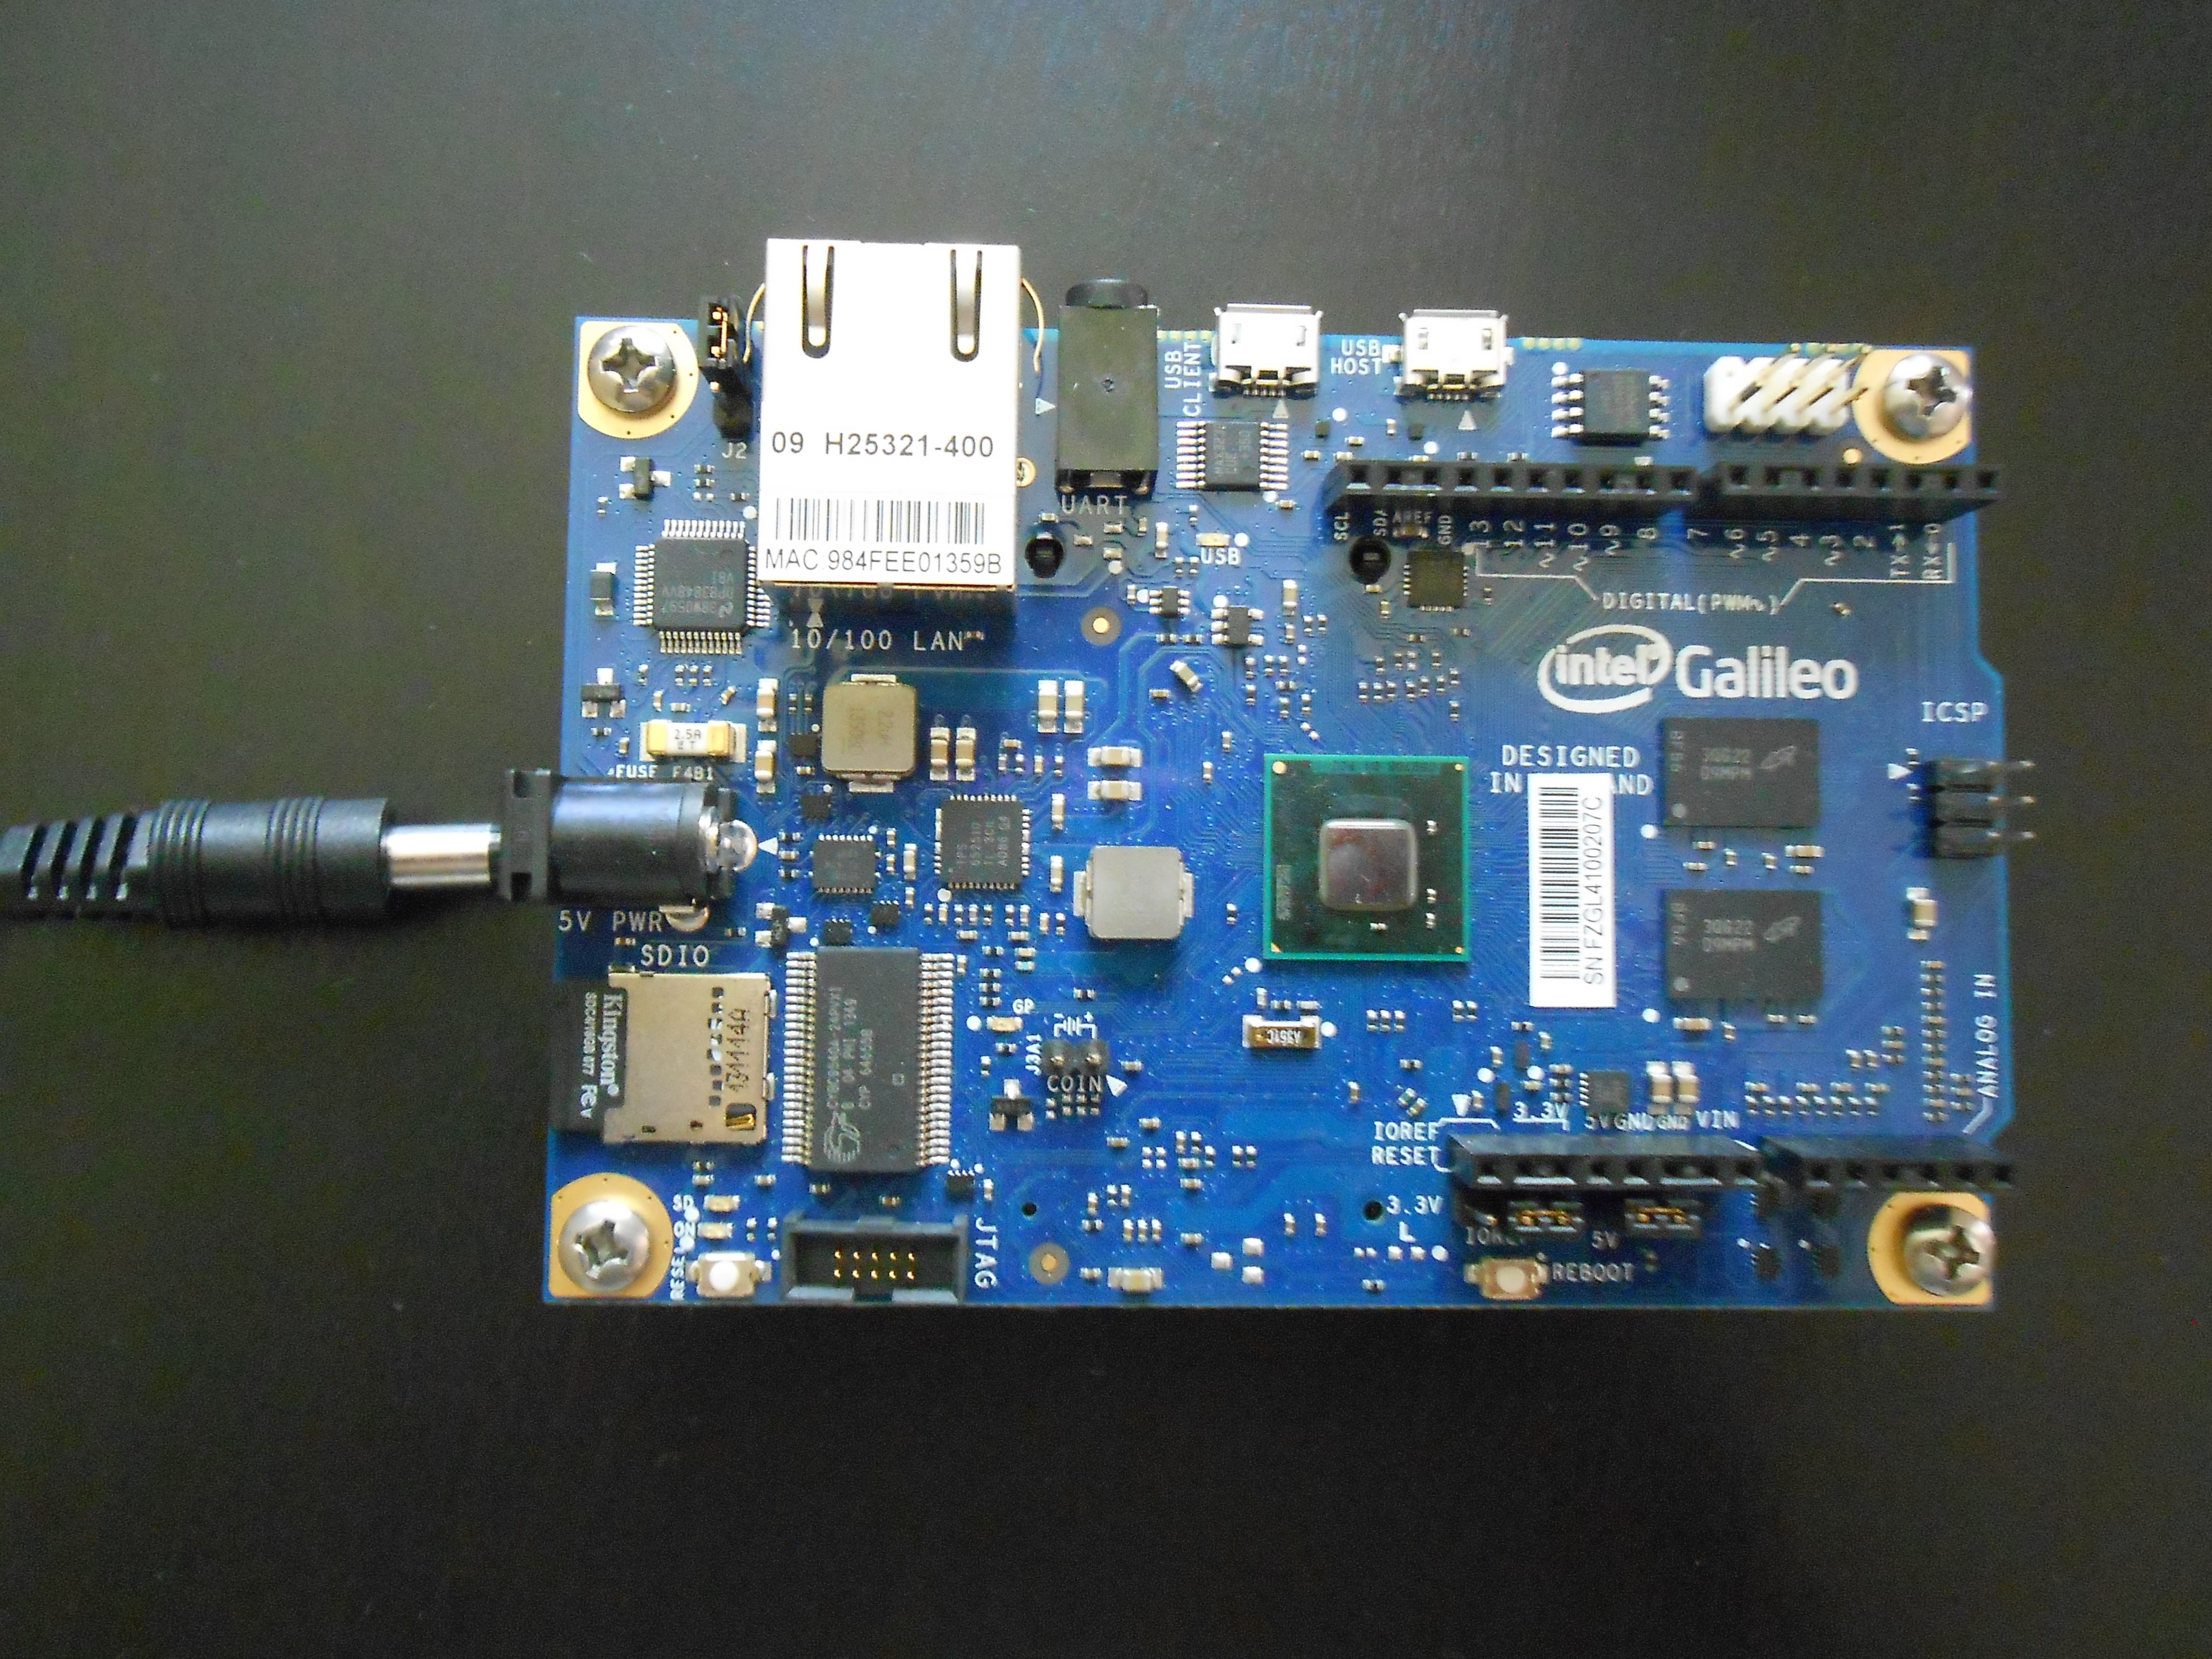 Galileo Gen 1 with power cable